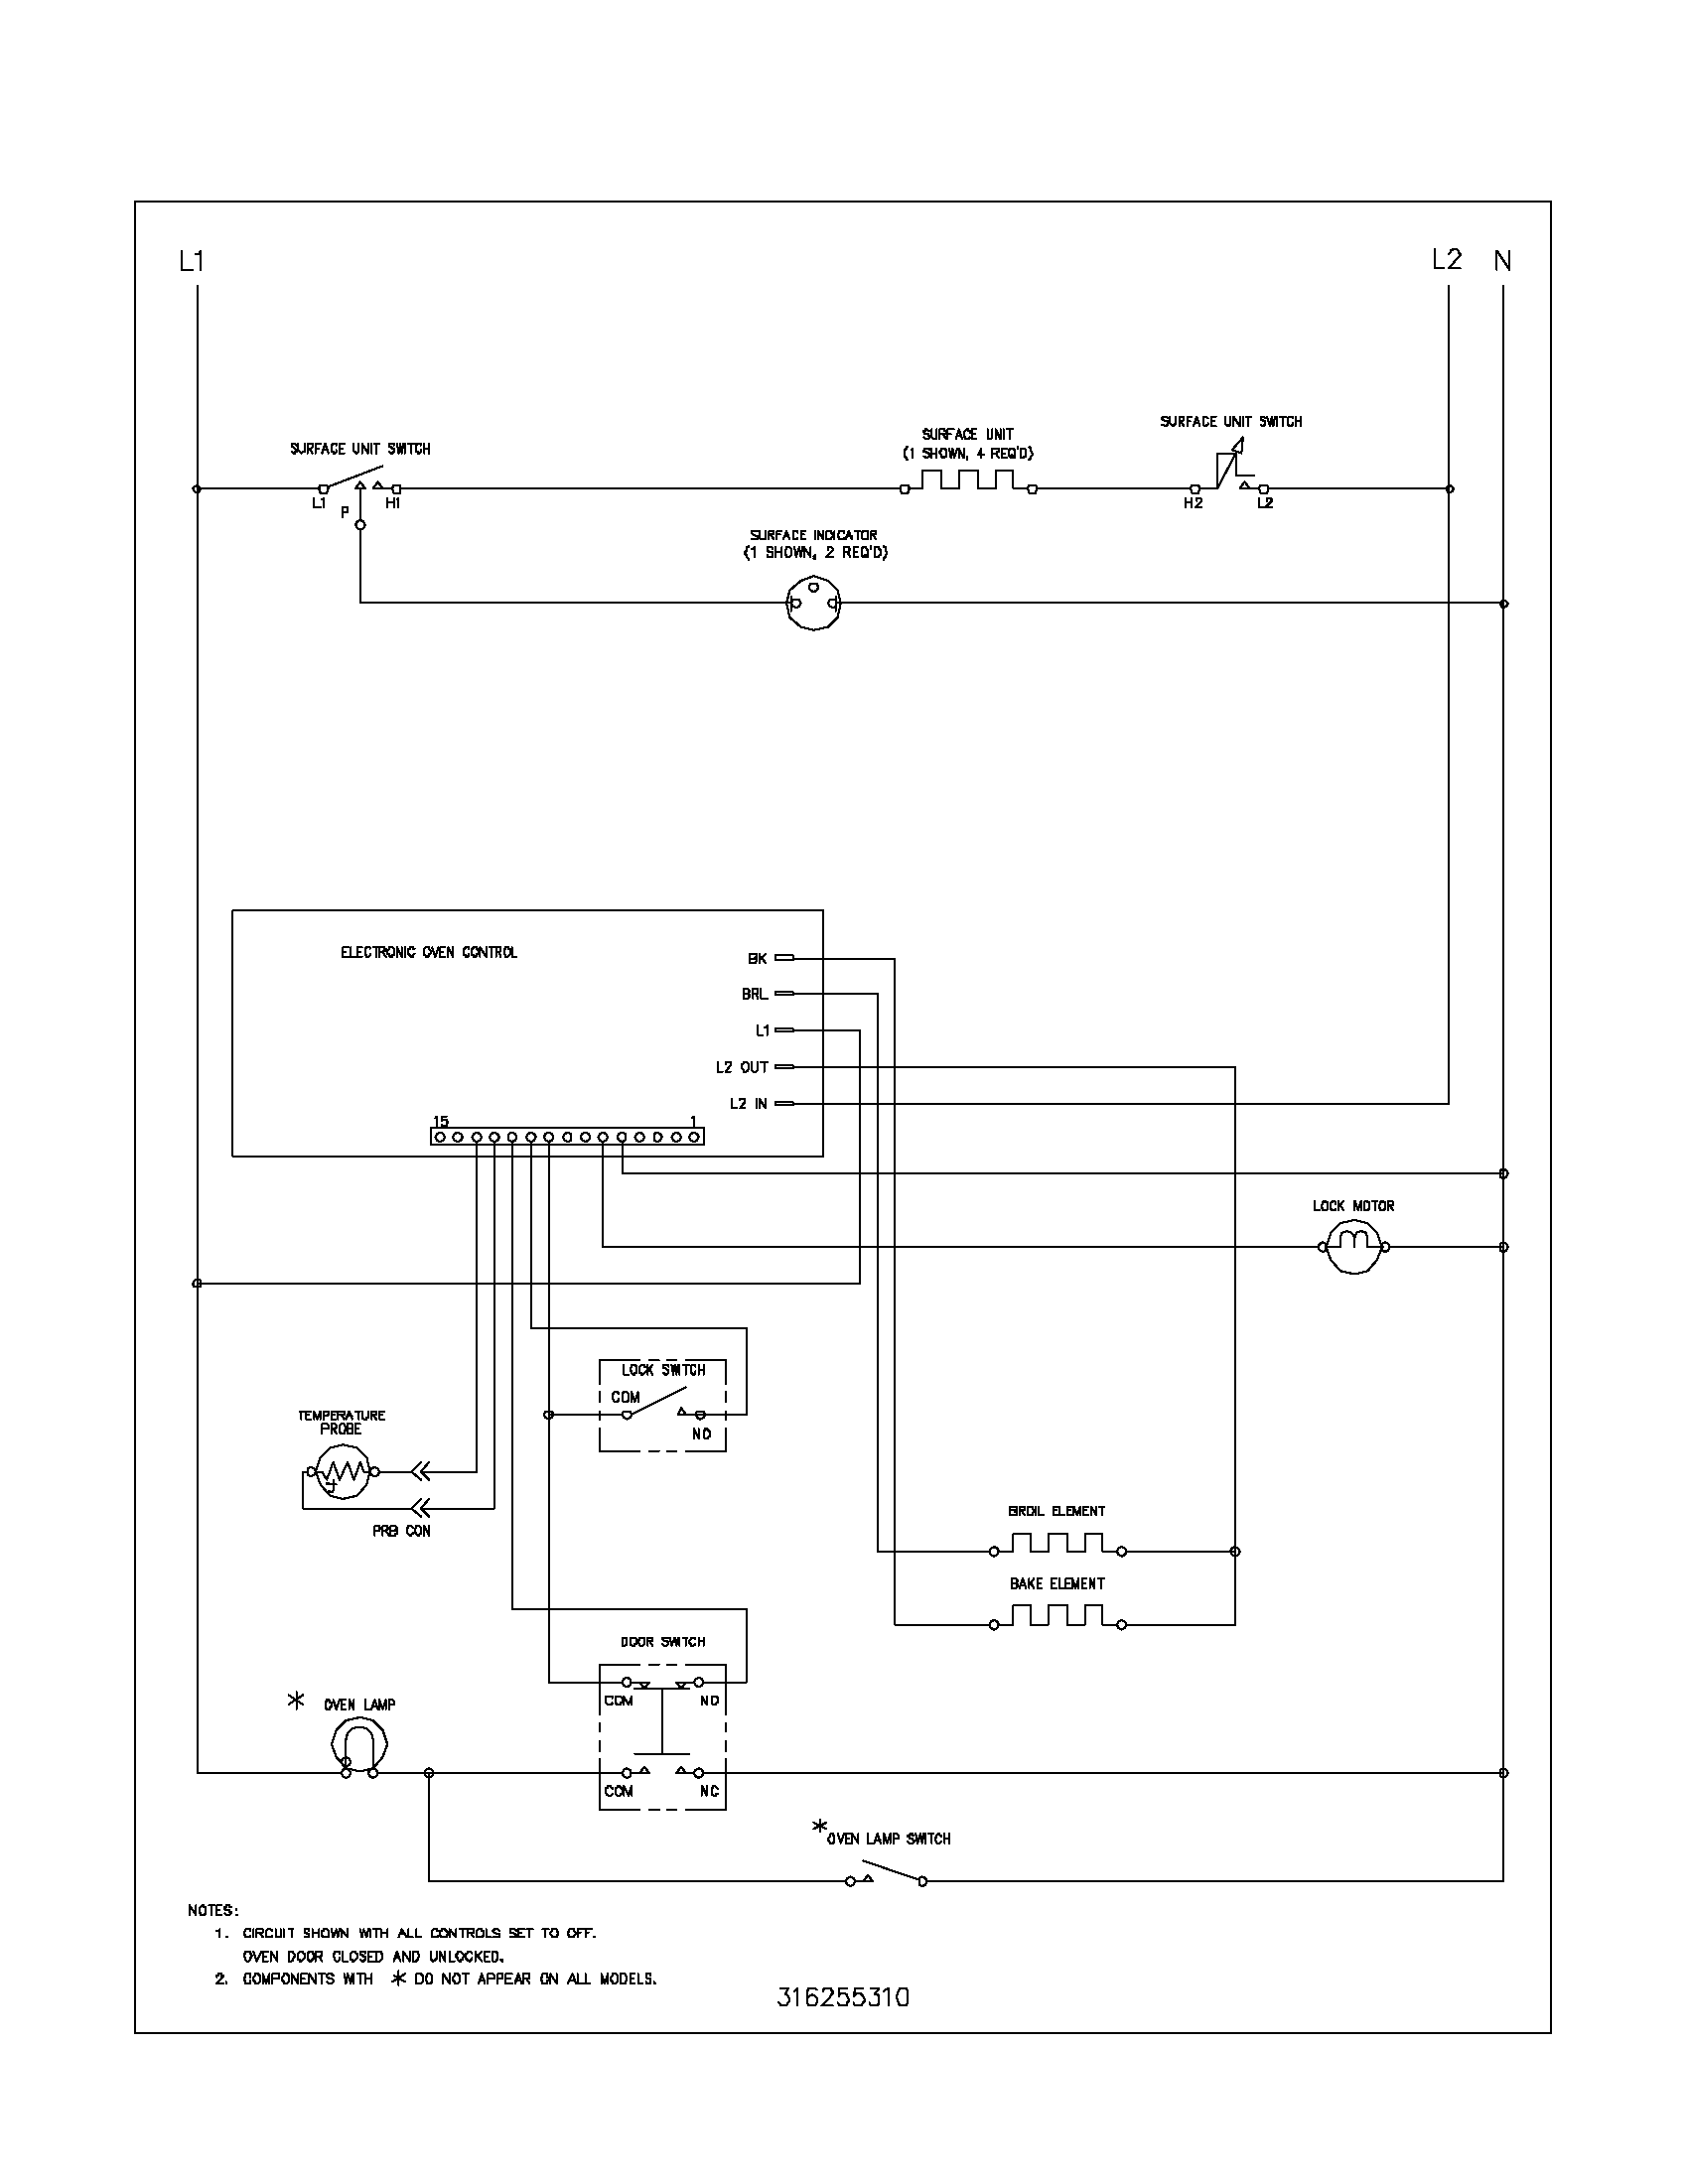 simple wiring diagram of fridge use case library management system frigidaire fef352asf electric range timer stove clocks